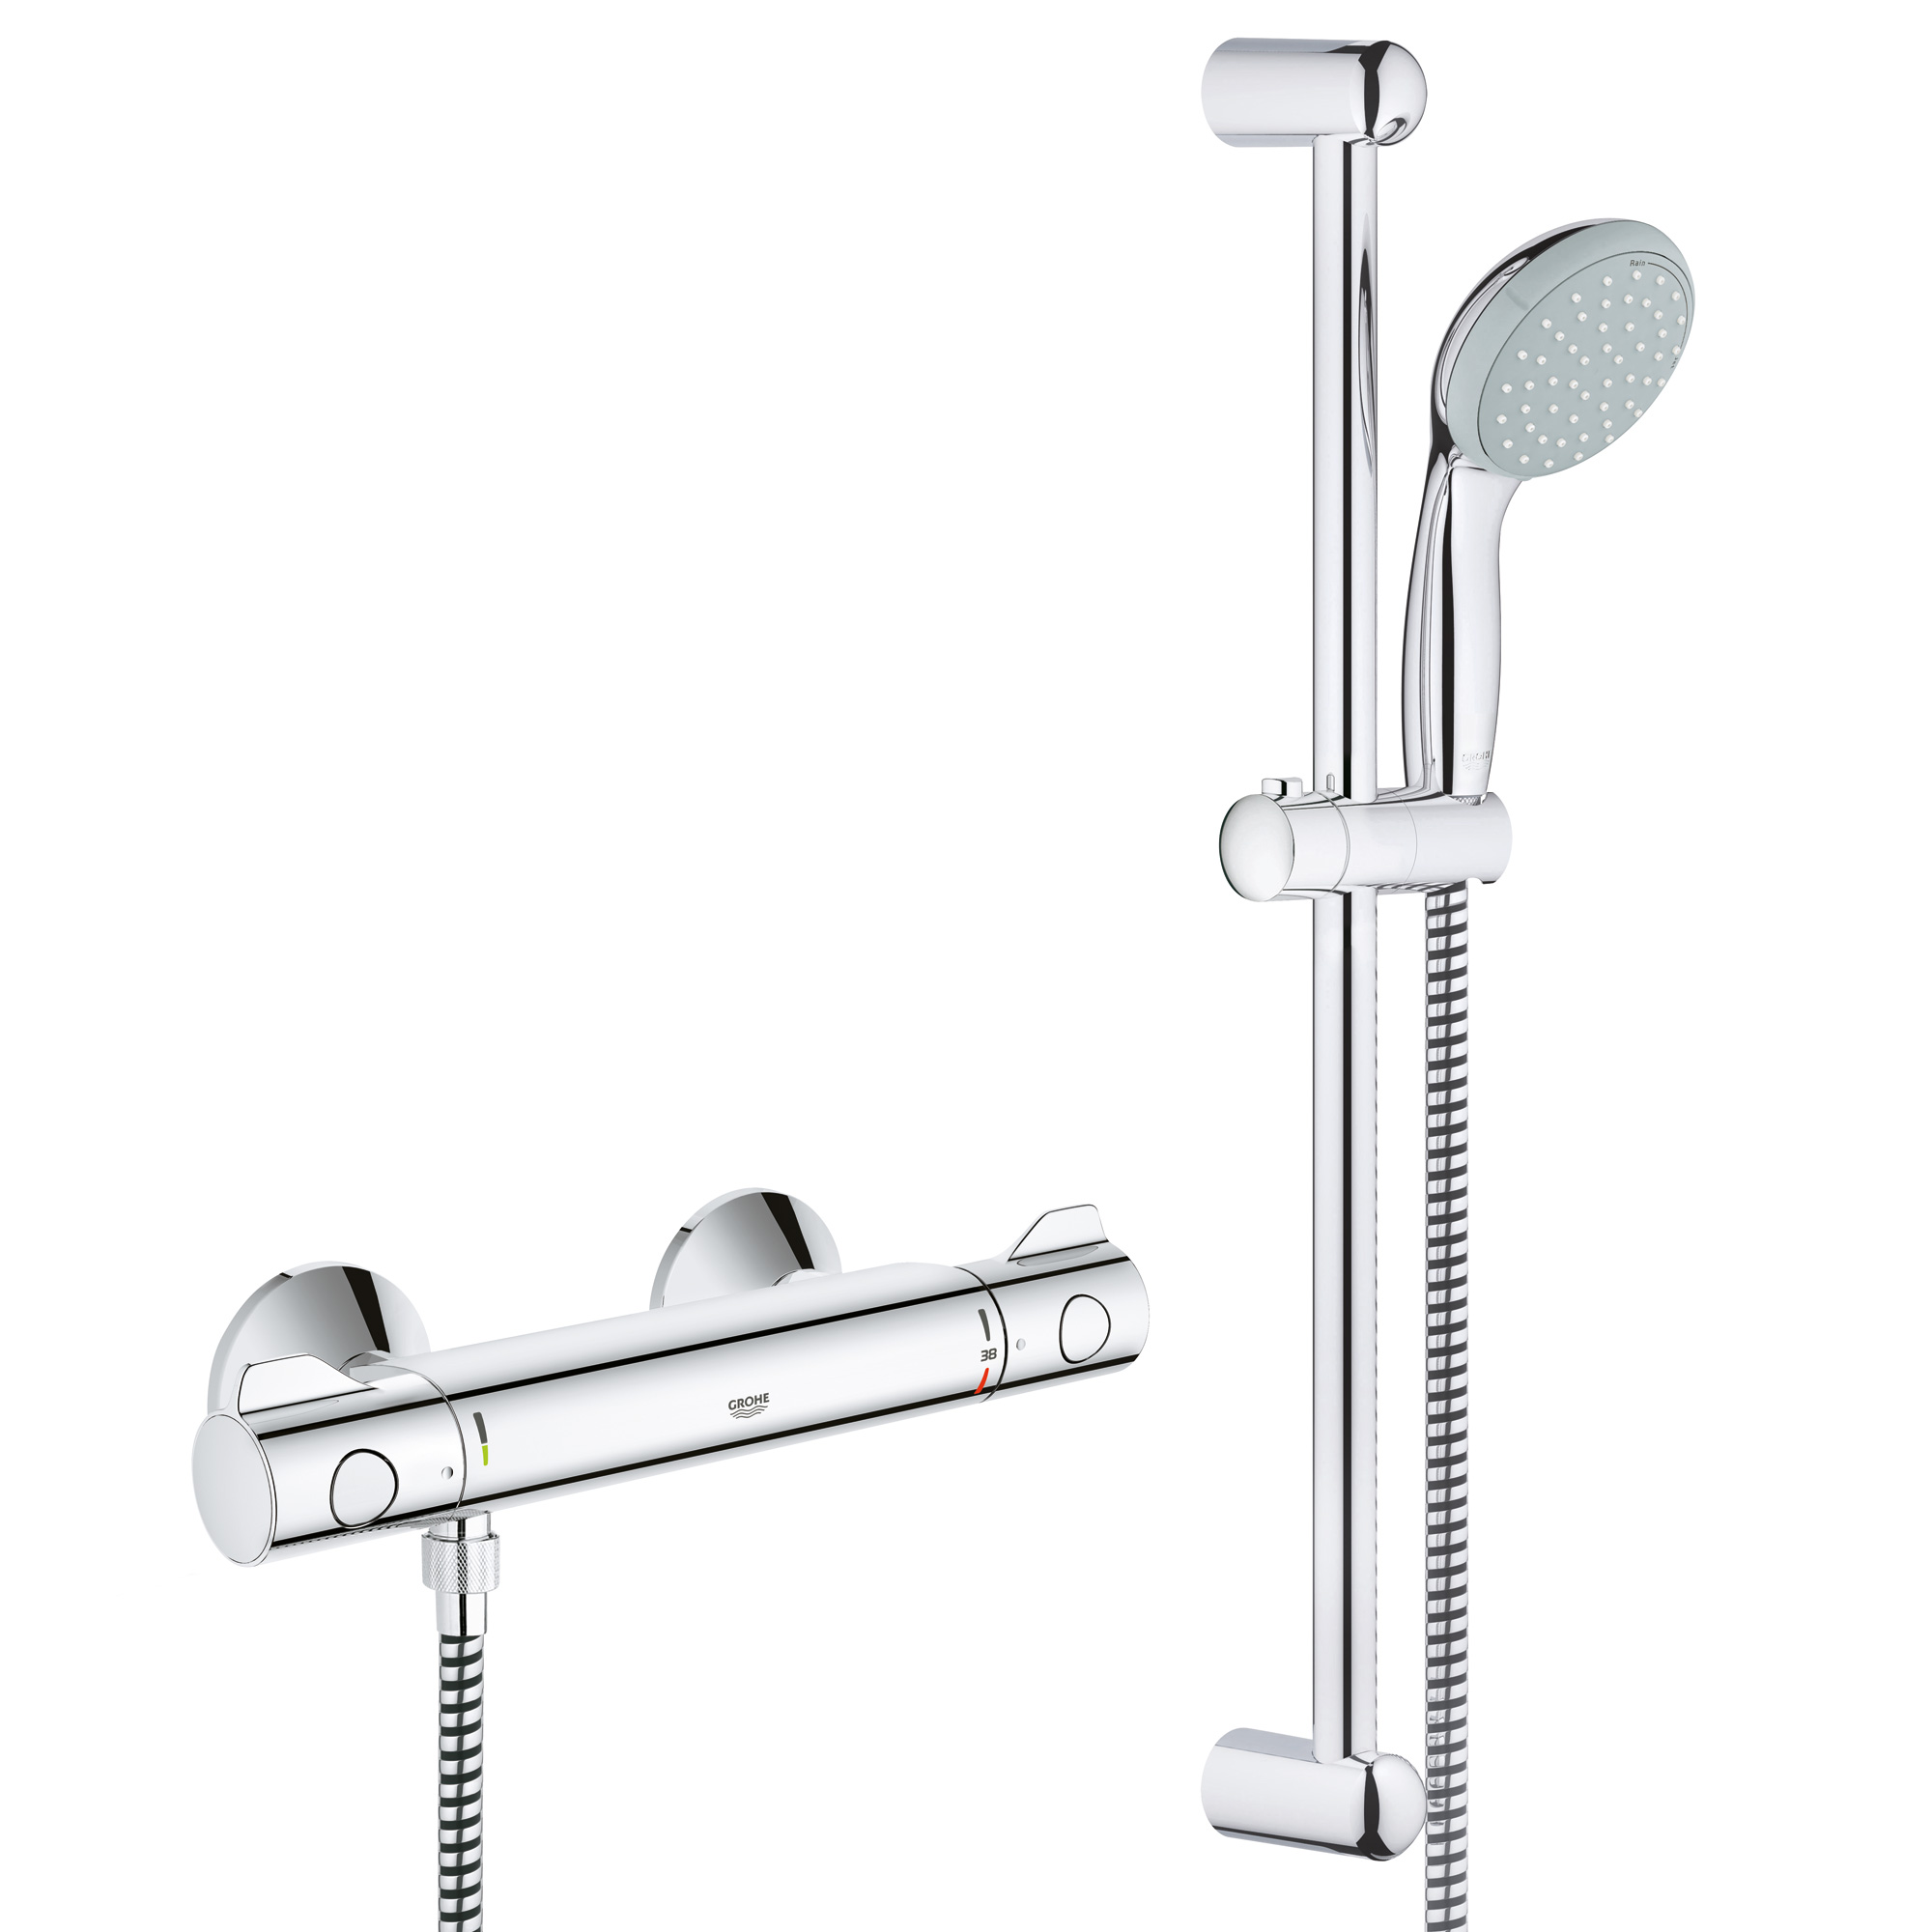 flange bar function chrome package arm shower grohe system hand and single trim head rain slide europlus with starlight